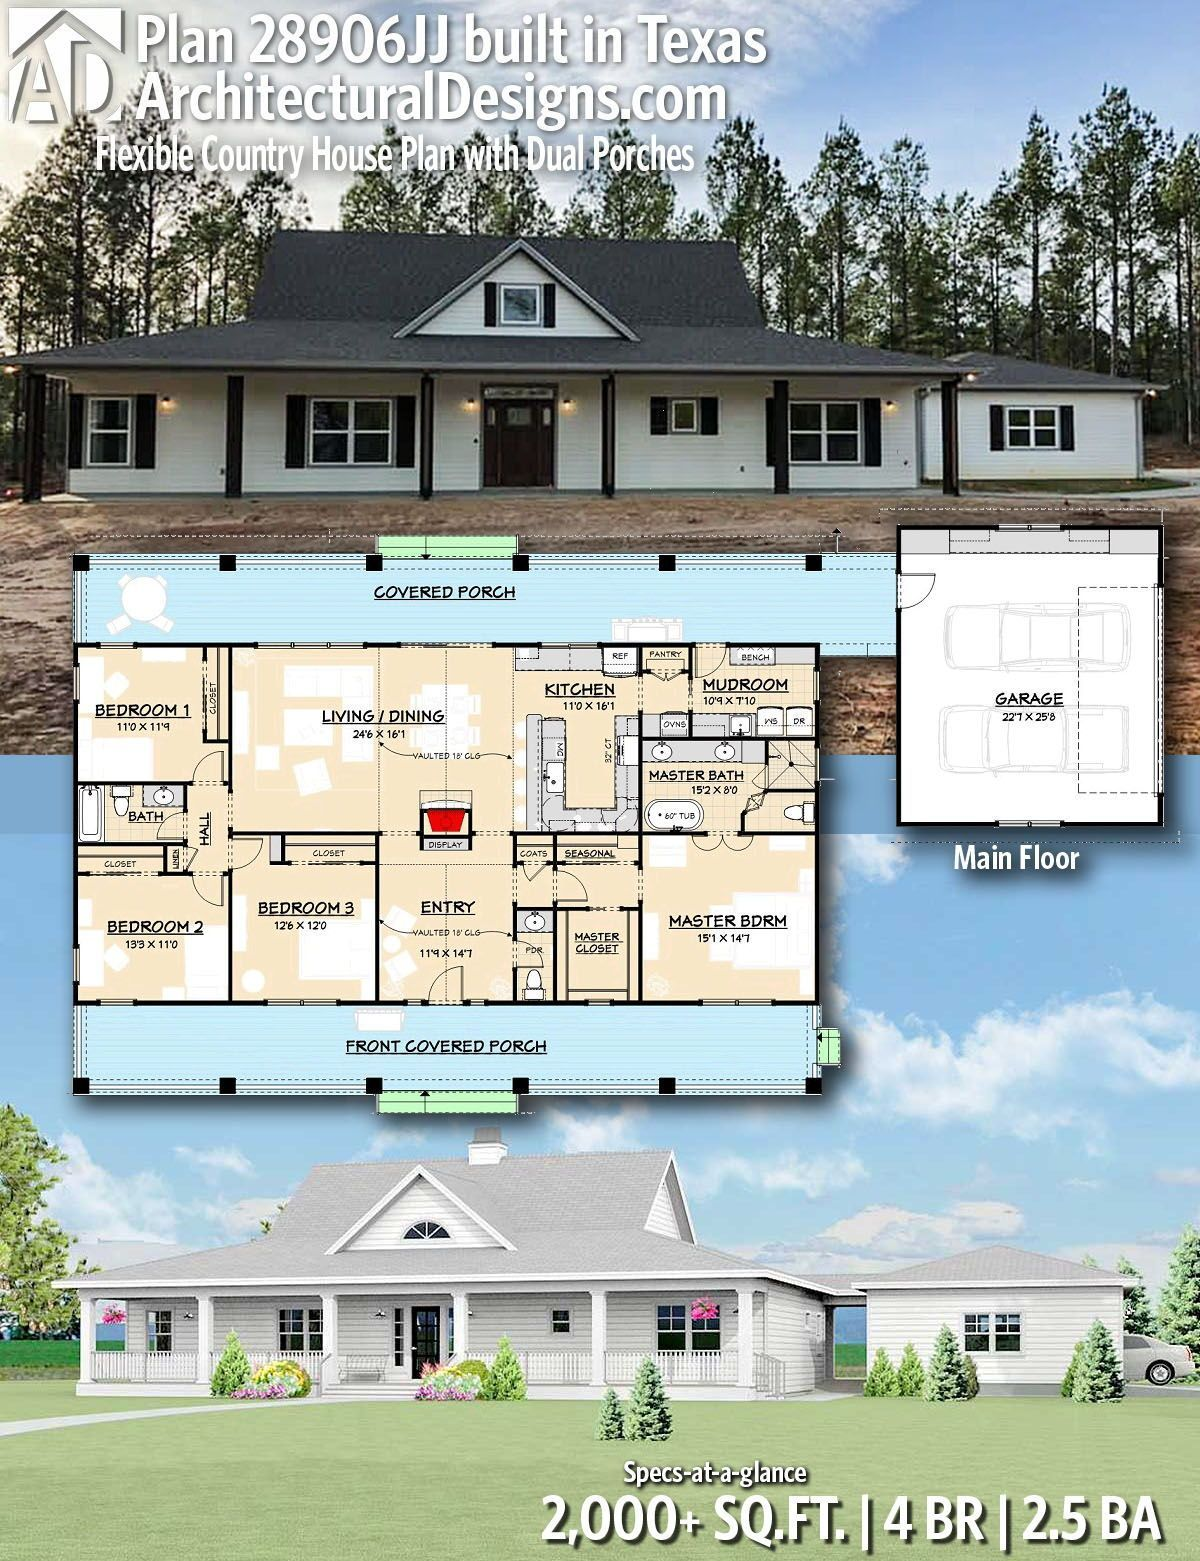 Plan 28906jj Flexible Country House Plan With Dual Porches In 2020 Pole Barn House Plans Barn House Plans Country House Plan